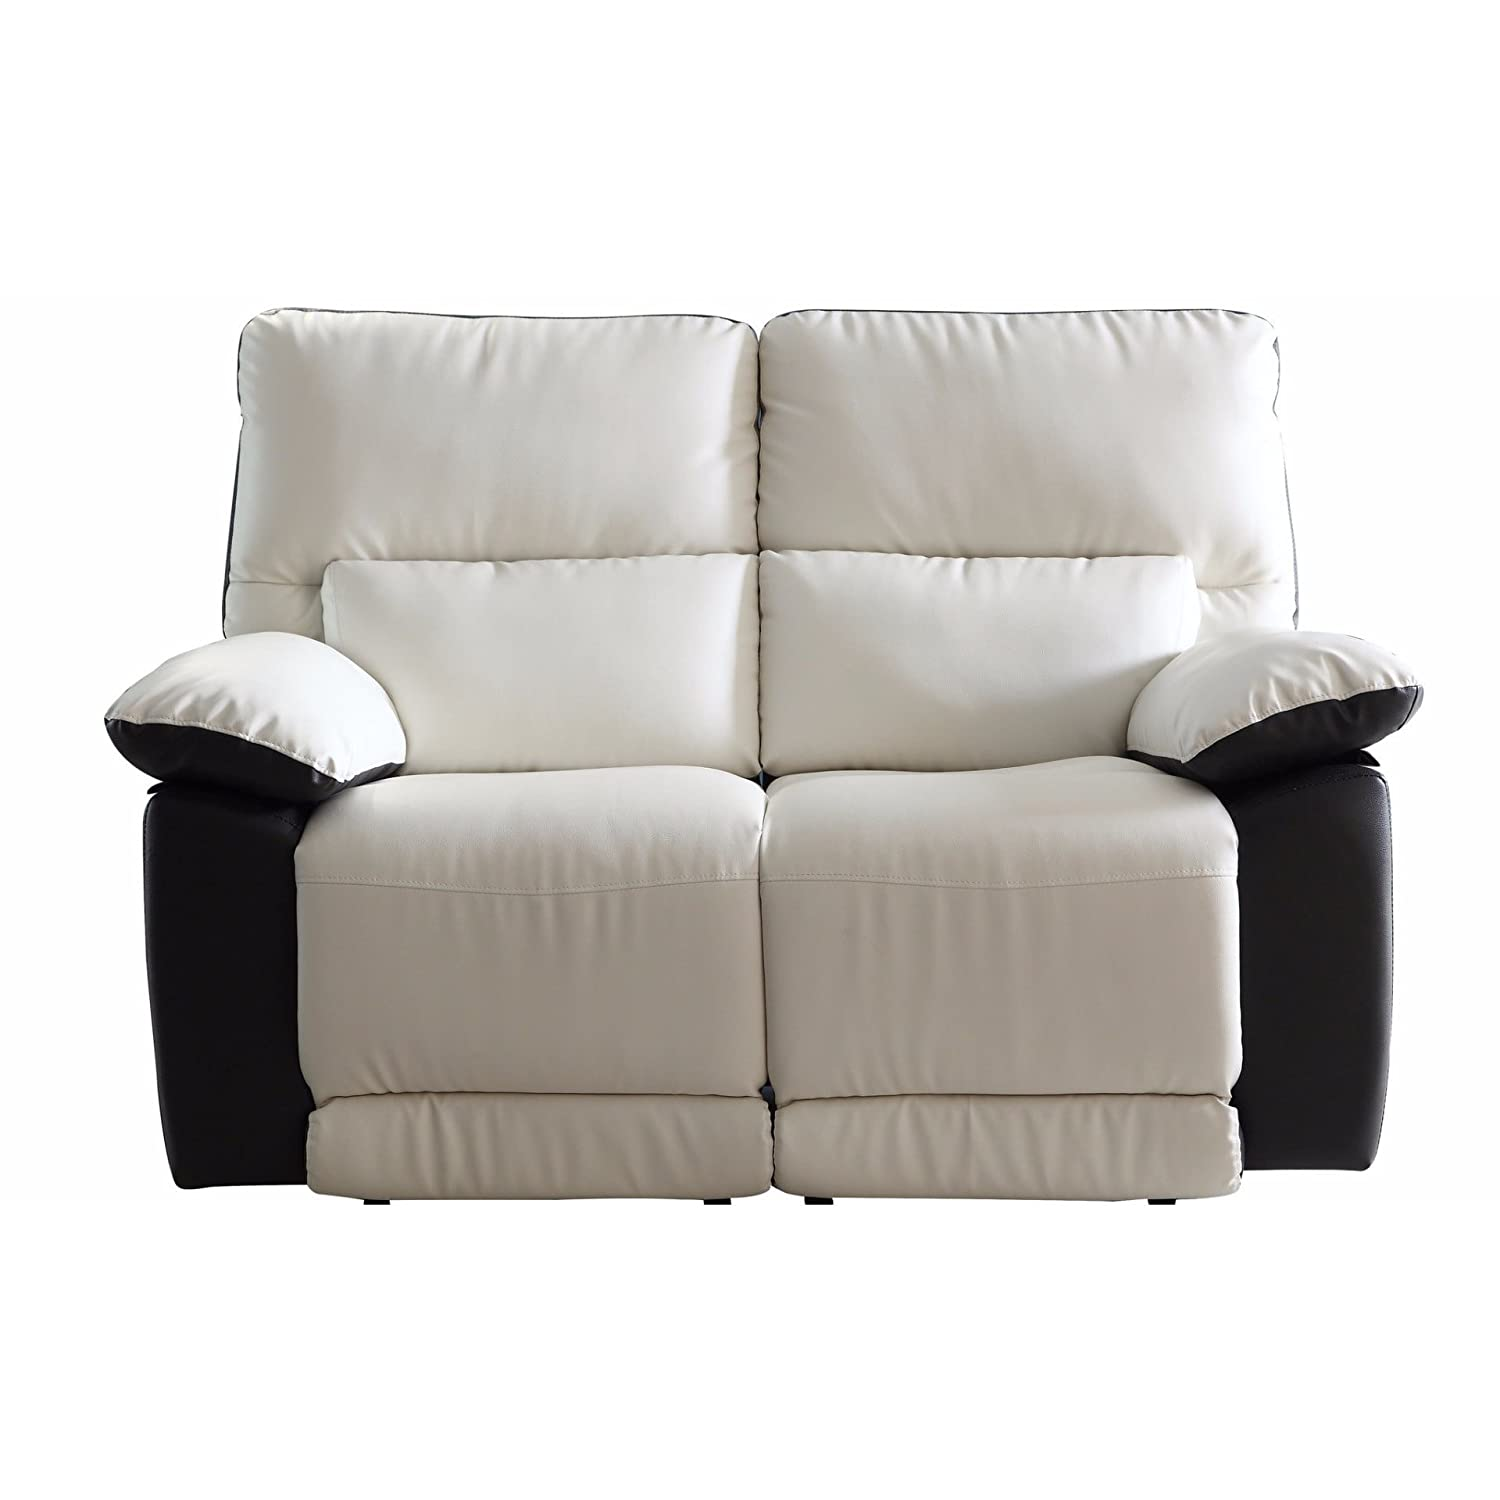 Best Recliner Reviews and Buying Guide 5